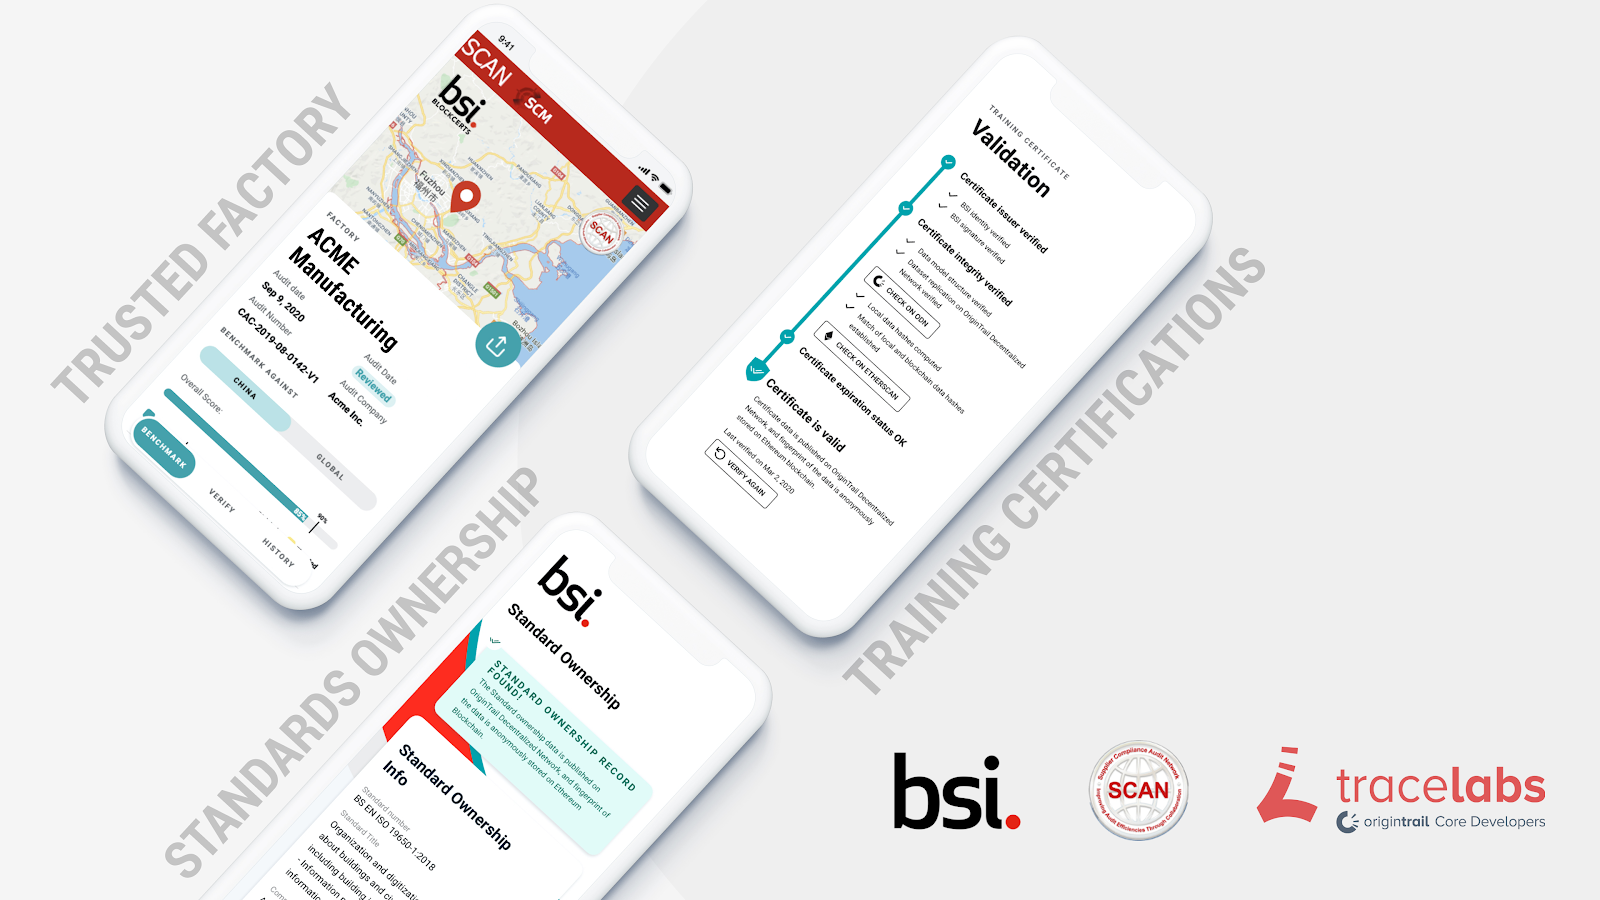 In collaboration with Trace Labs, BSI is now launching a series of blockchain-based solutions